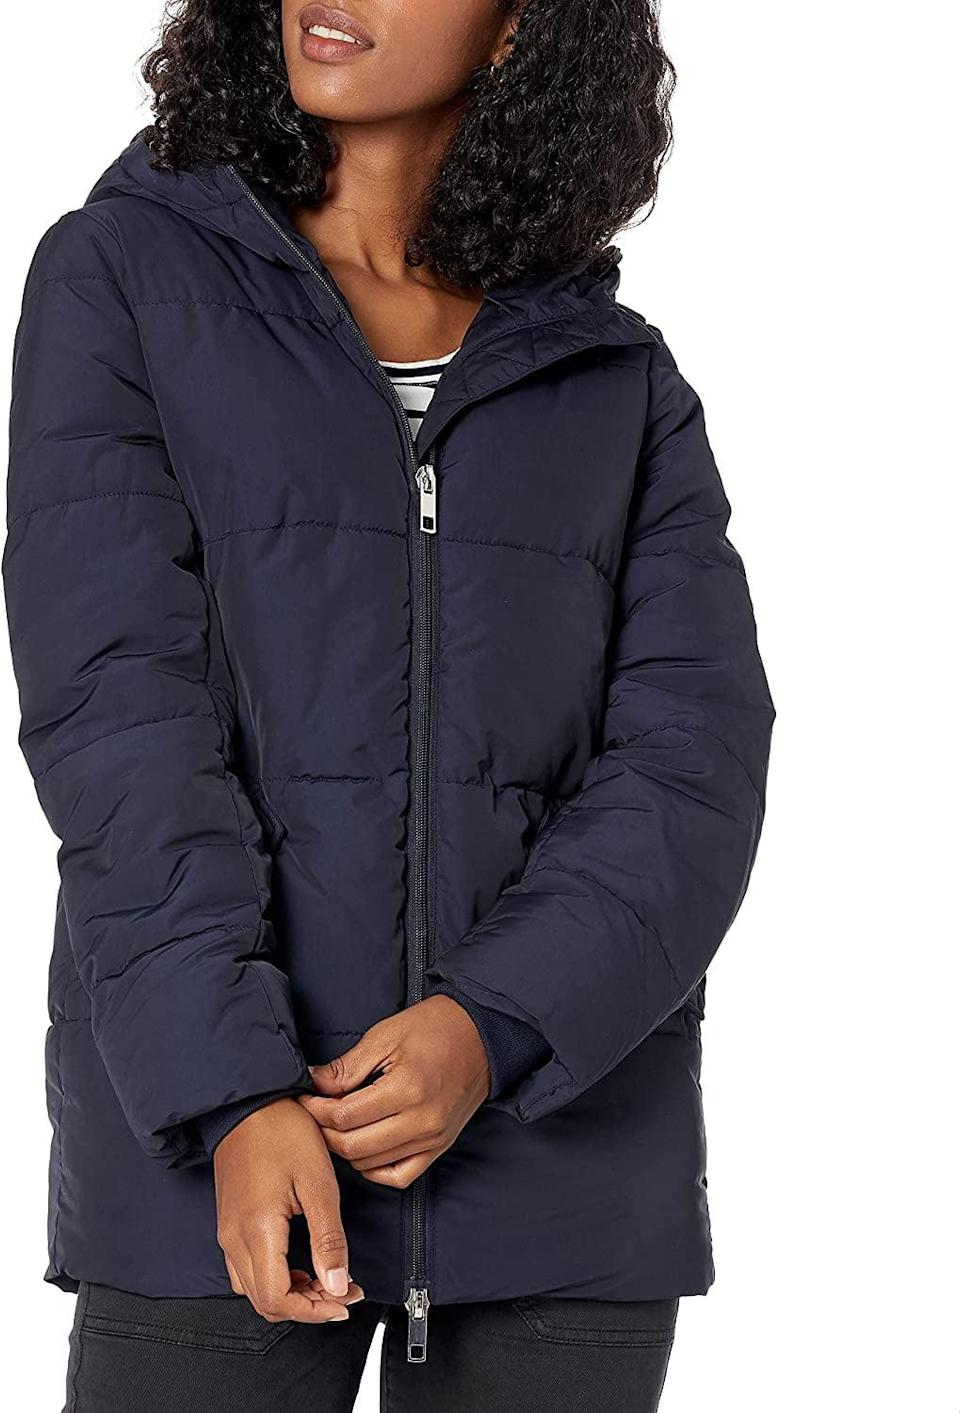 <p>This <span>Daily Ritual Primaloft Puffer Jacket</span> ($75) will protect you from the cold, yet it will not feel too heavy to wear. The color and silhouette make it extremely wearable.</p>